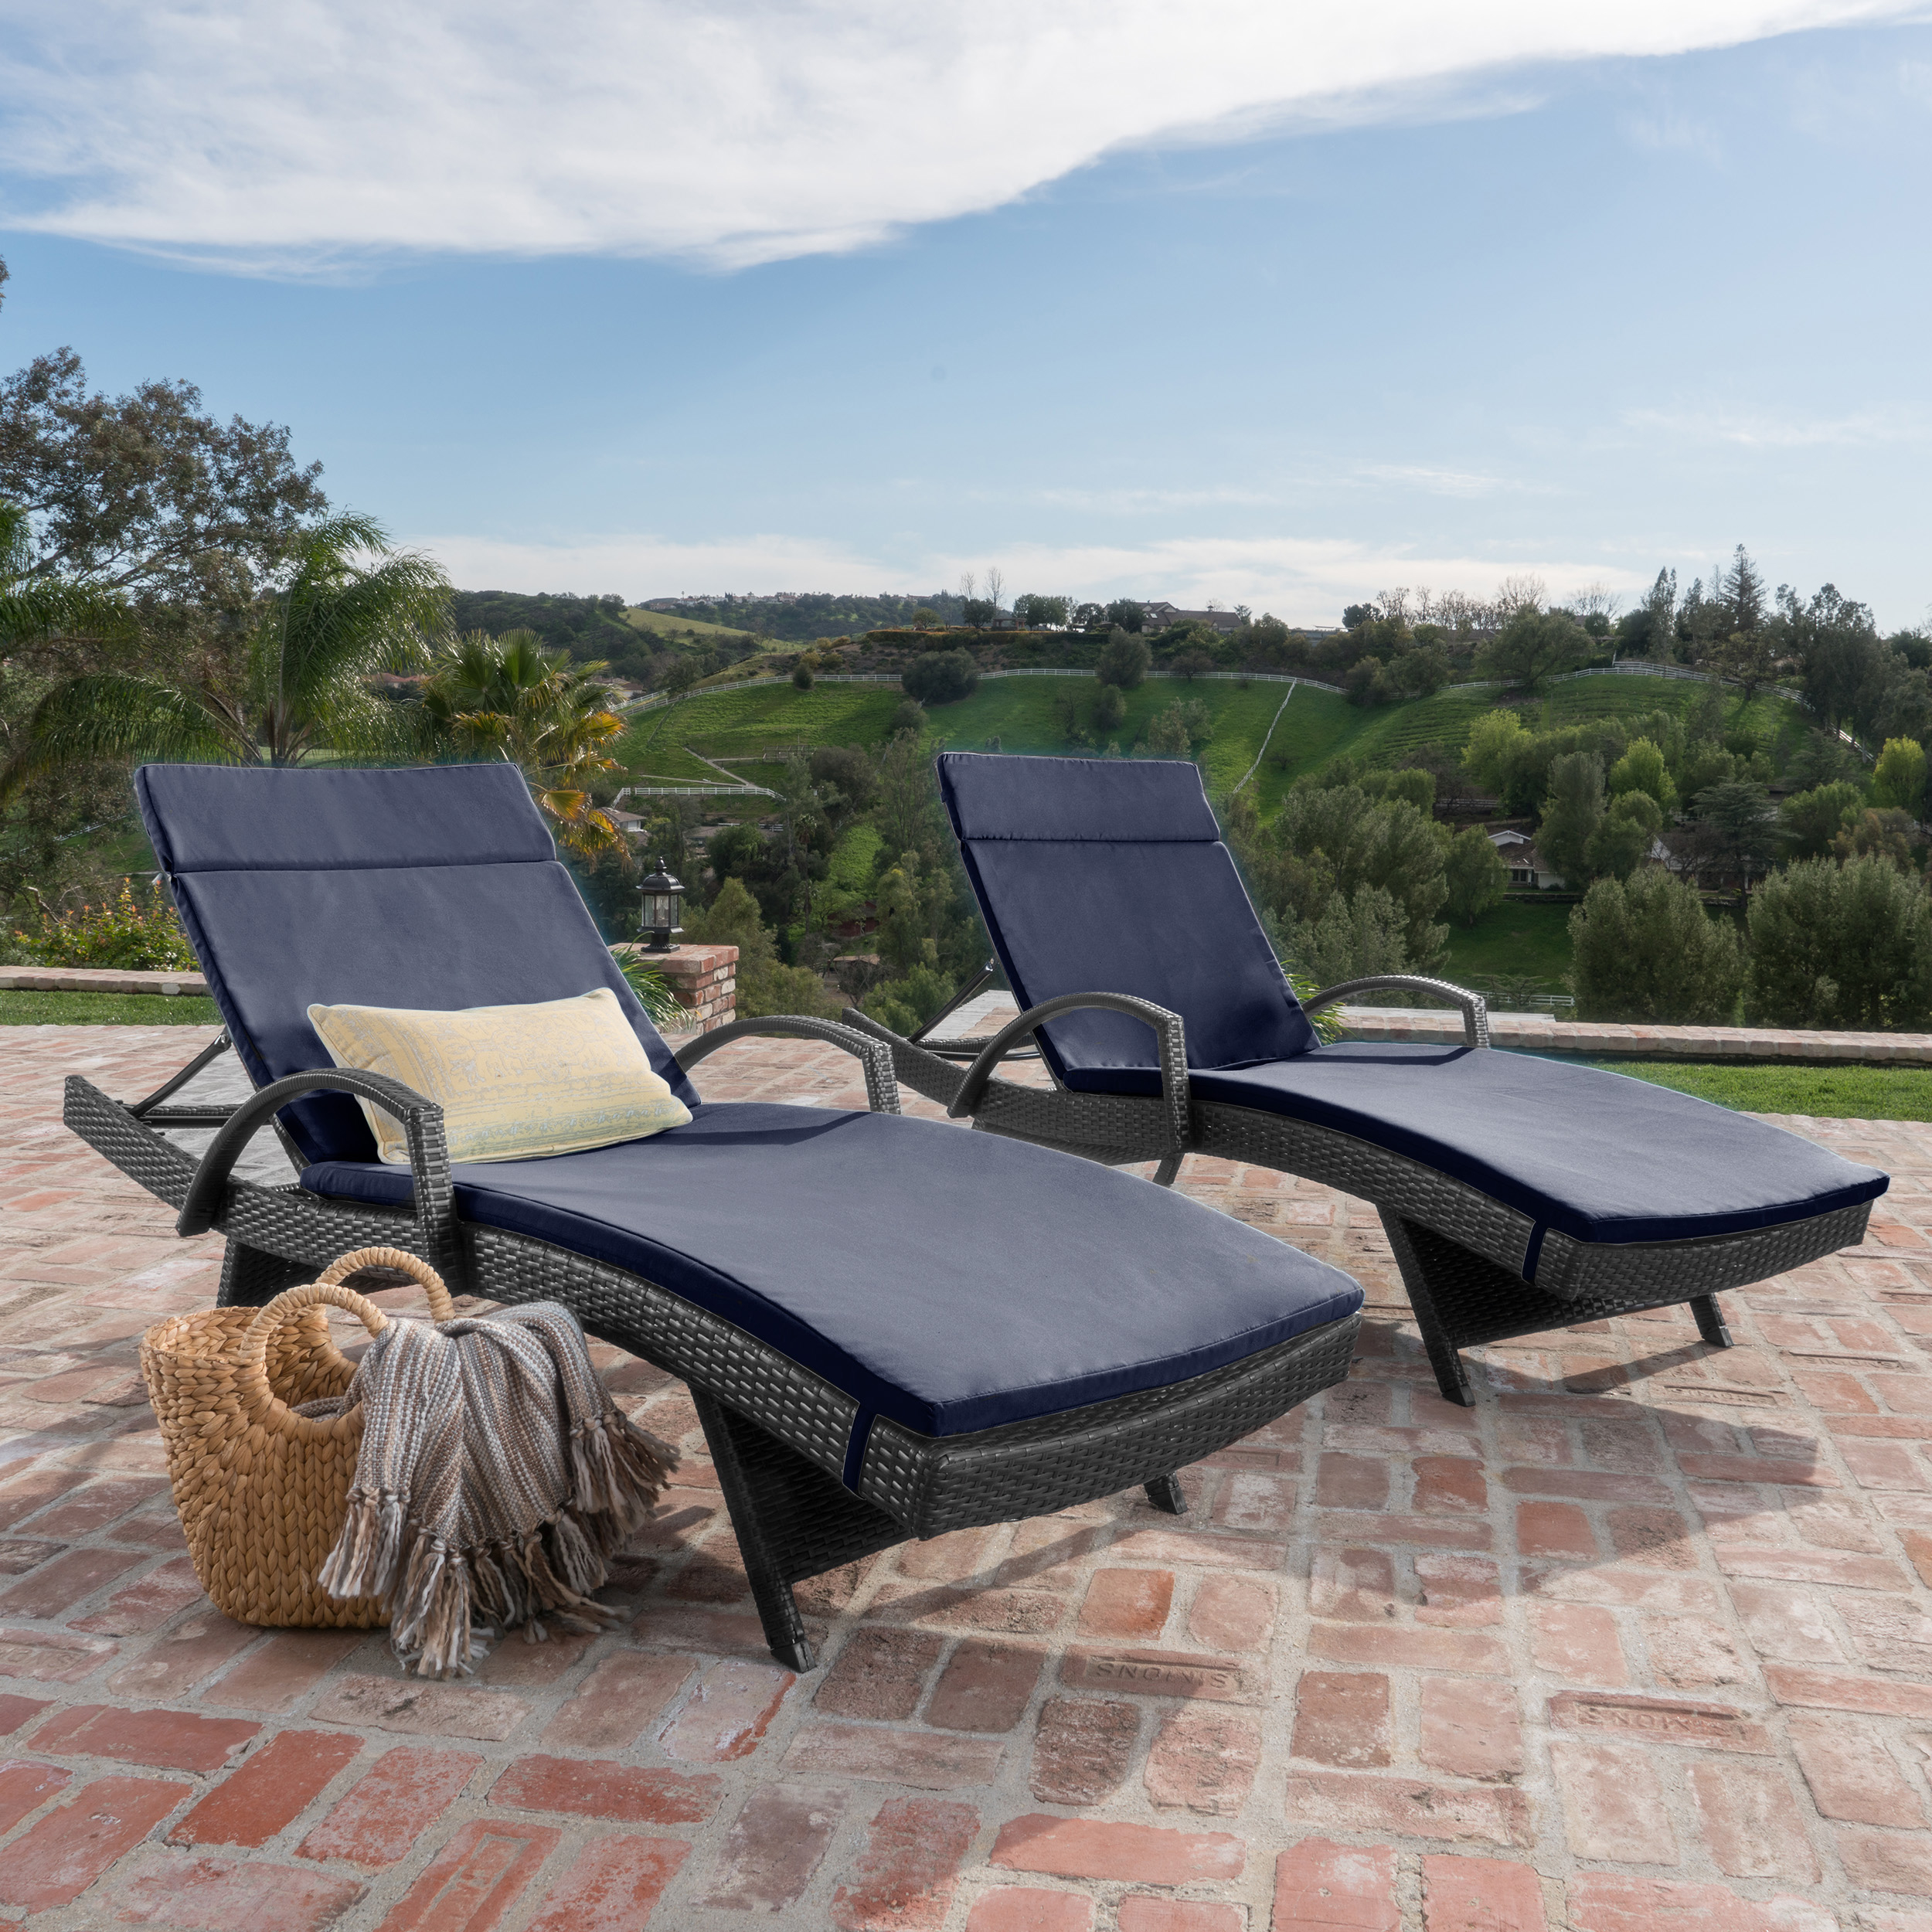 Soleil Outdoor Wicker Chaise Lounges w/ Water Resistant Cushions (Set of 2) (5)